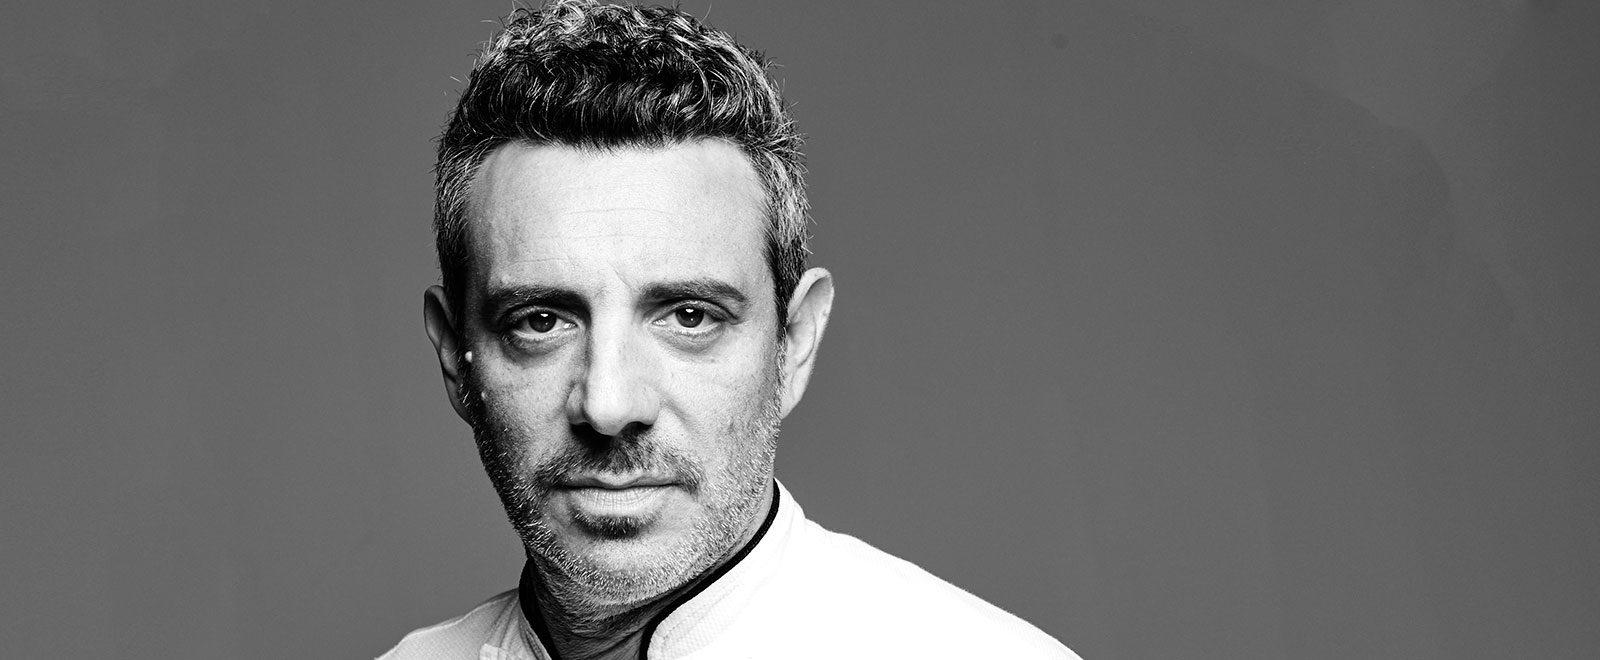 CHEF JOHN DELUCIE ON BUILDING CLASSIC NEW YORK DISHES